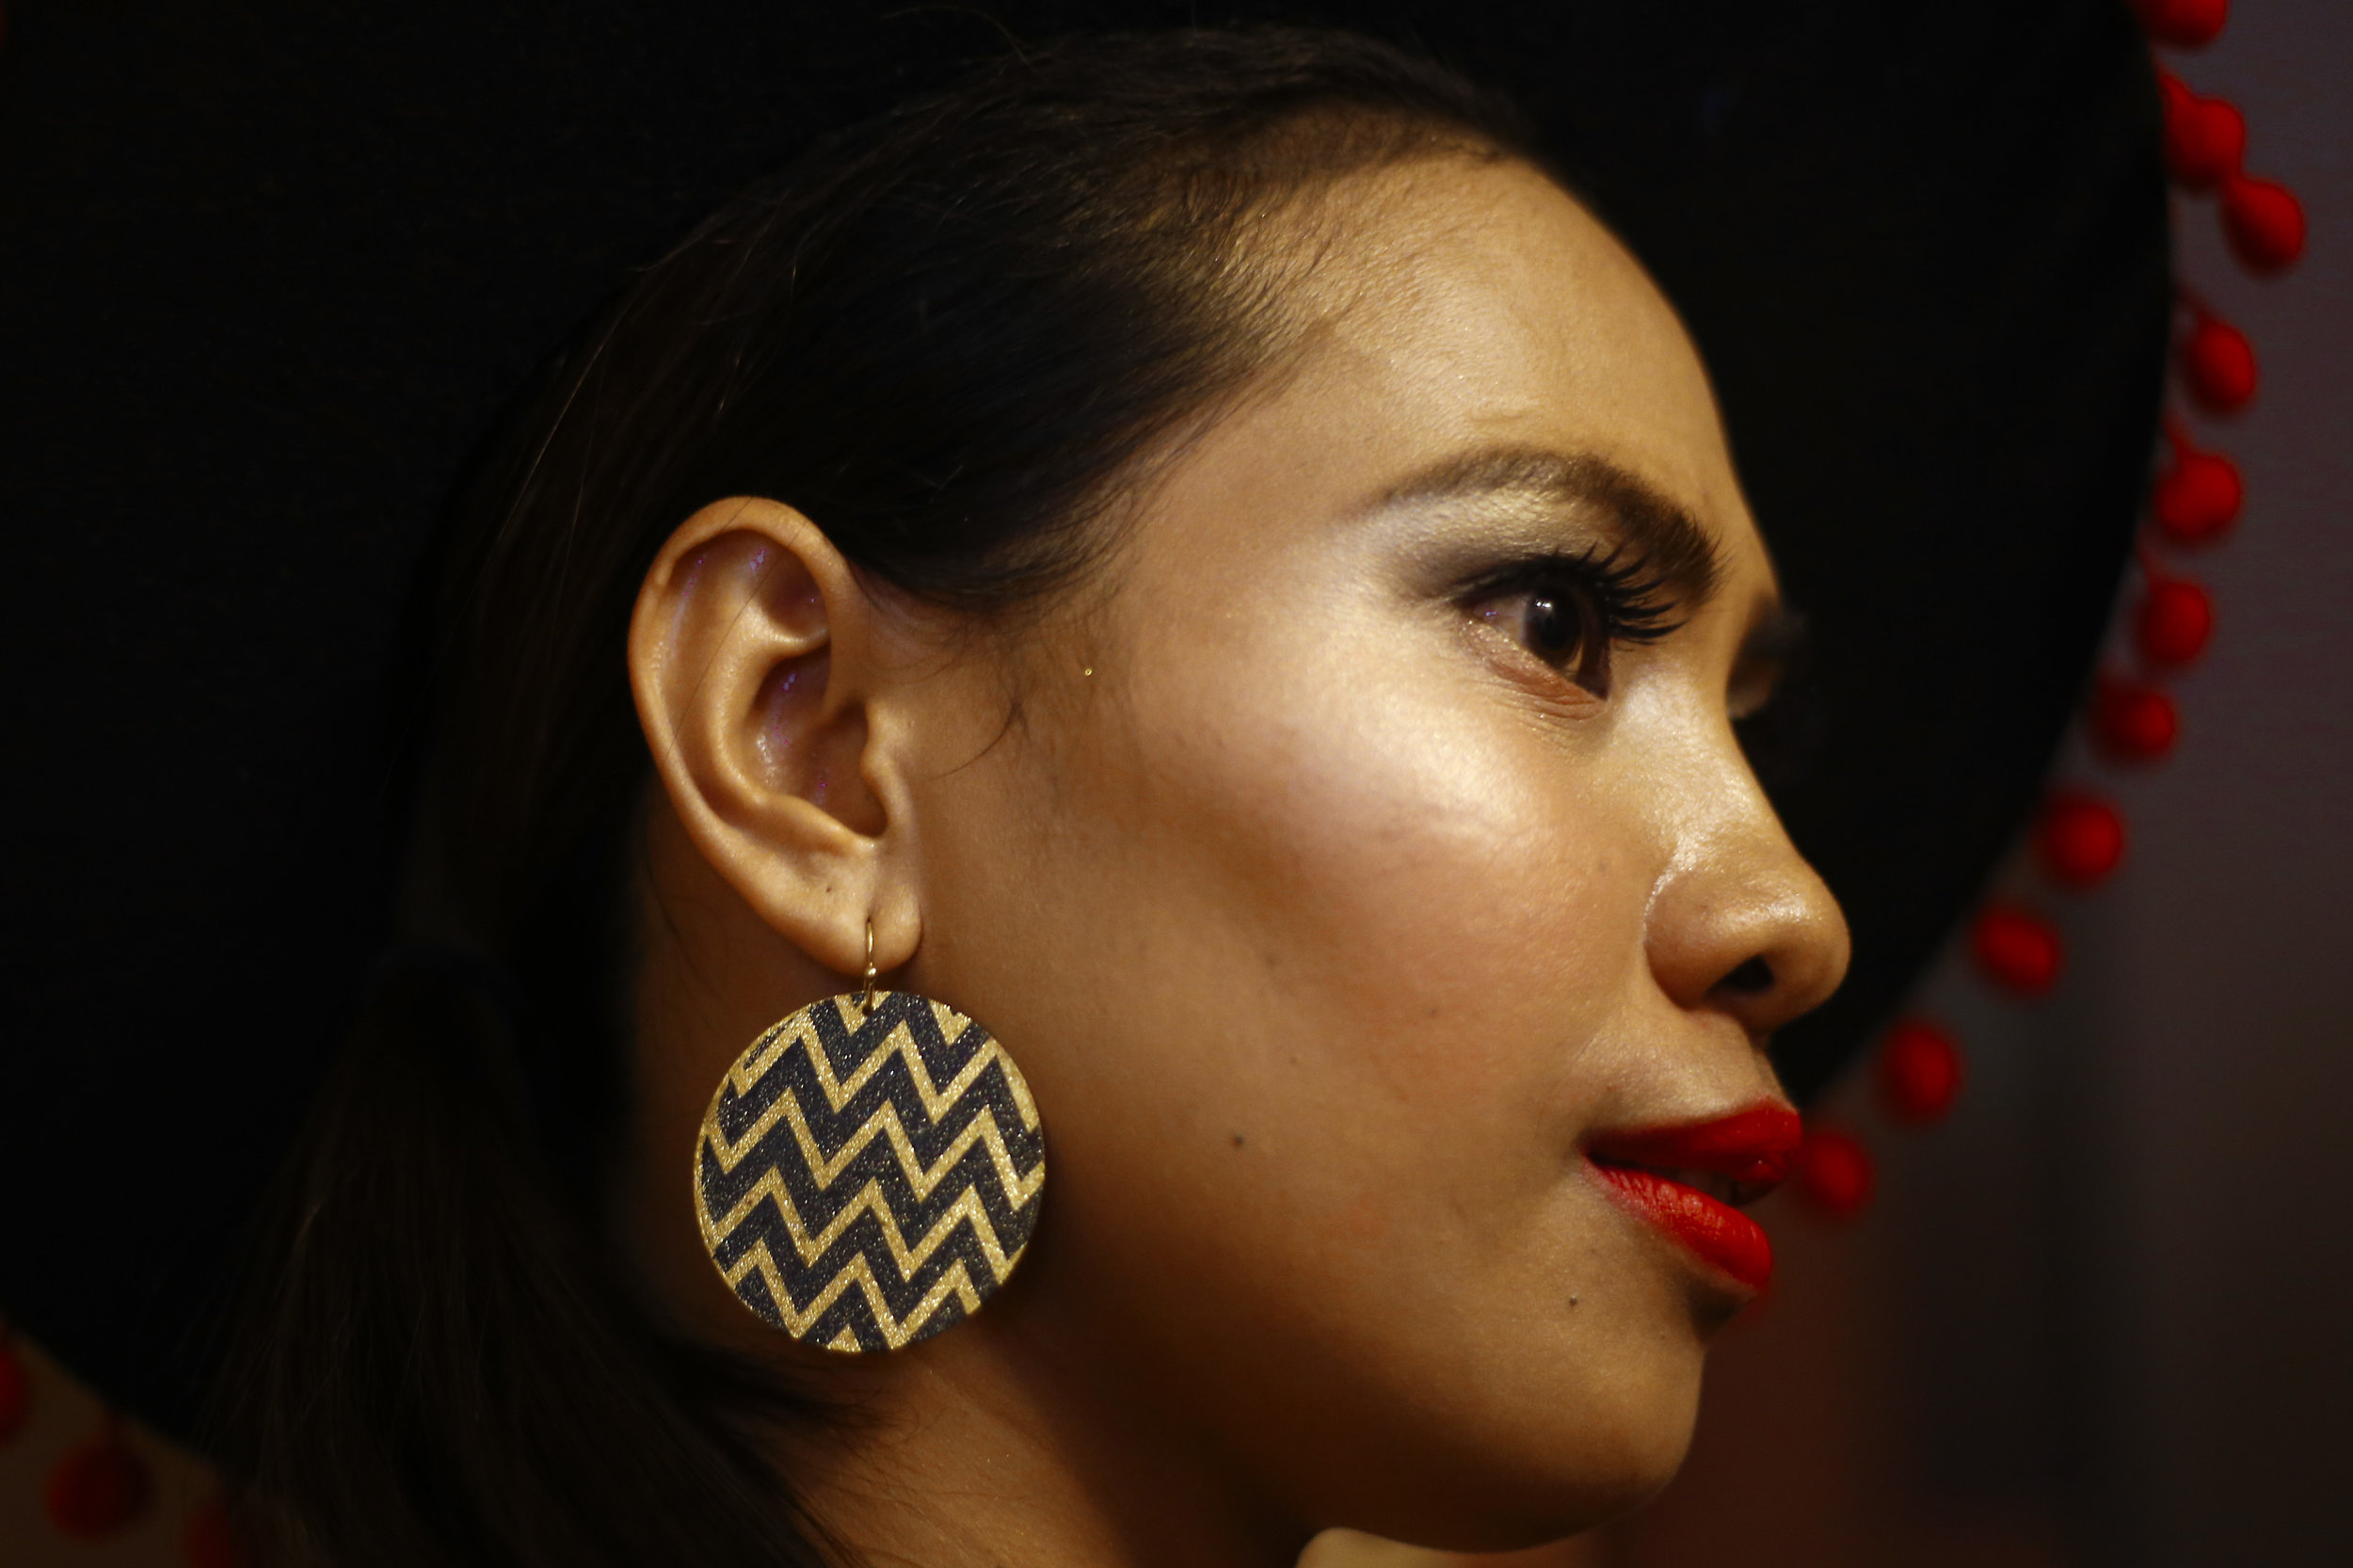 A contestant waits backstage at Rampstar 2018, a beauty pageant organised largely for Filipino domestic helpers in Singapore, July 29, 2018. REUTERS/Feline Lim